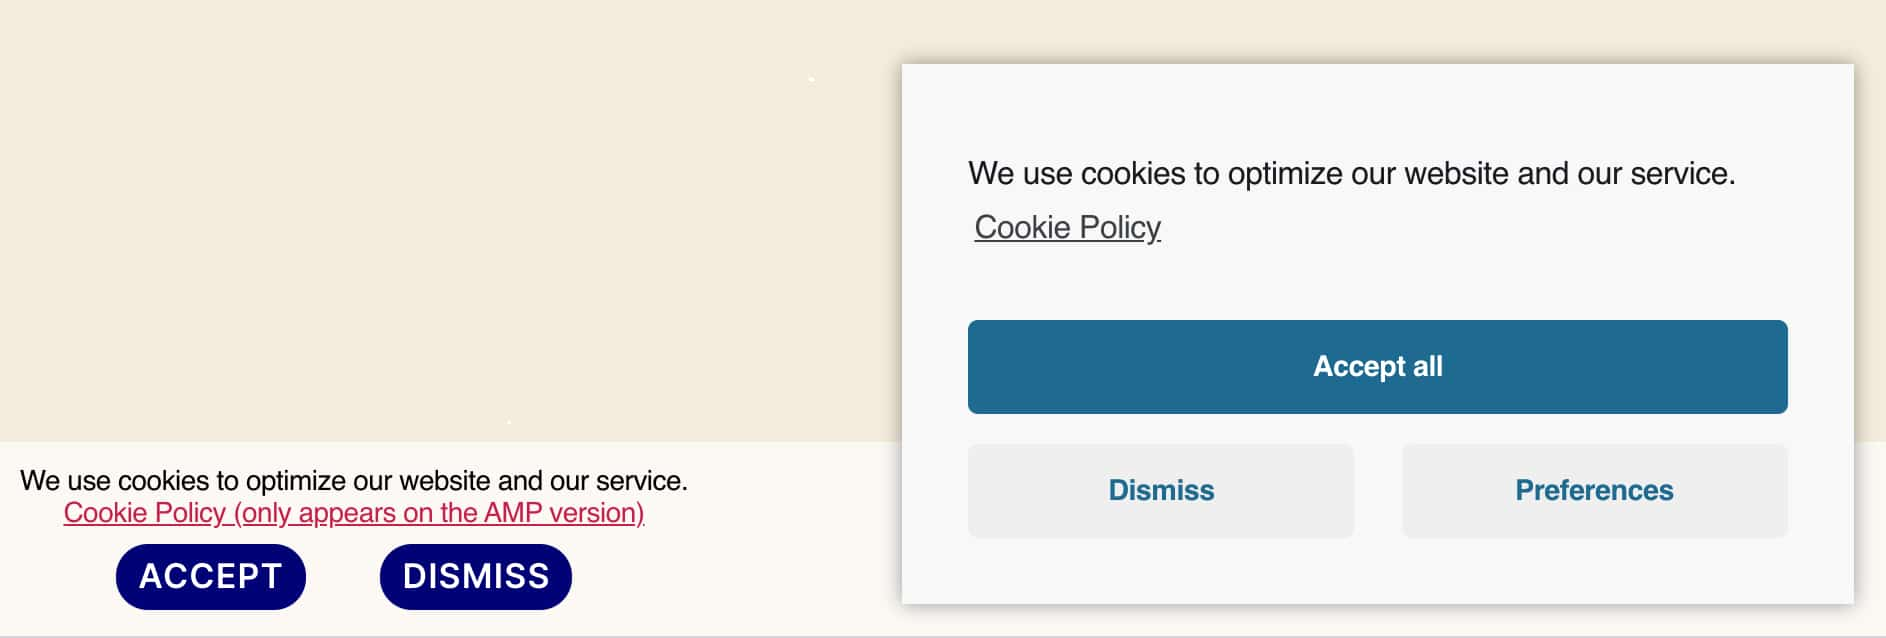 AMP Banner including the Cookie Policy link